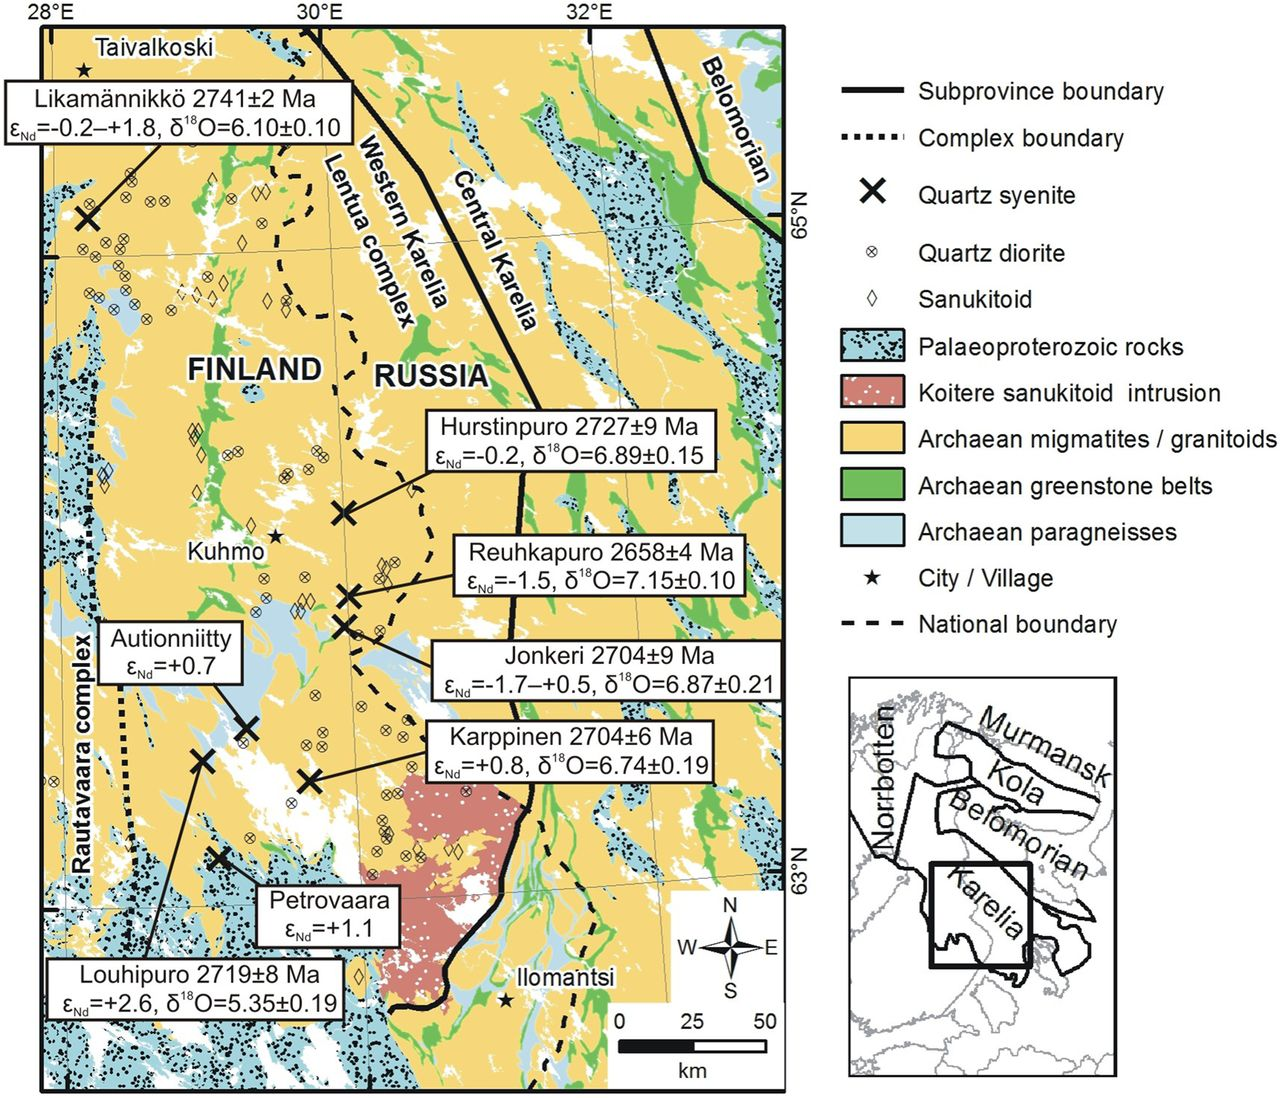 Alkaline Rich Quartz Syenite Intrusions Of The Western Karelia